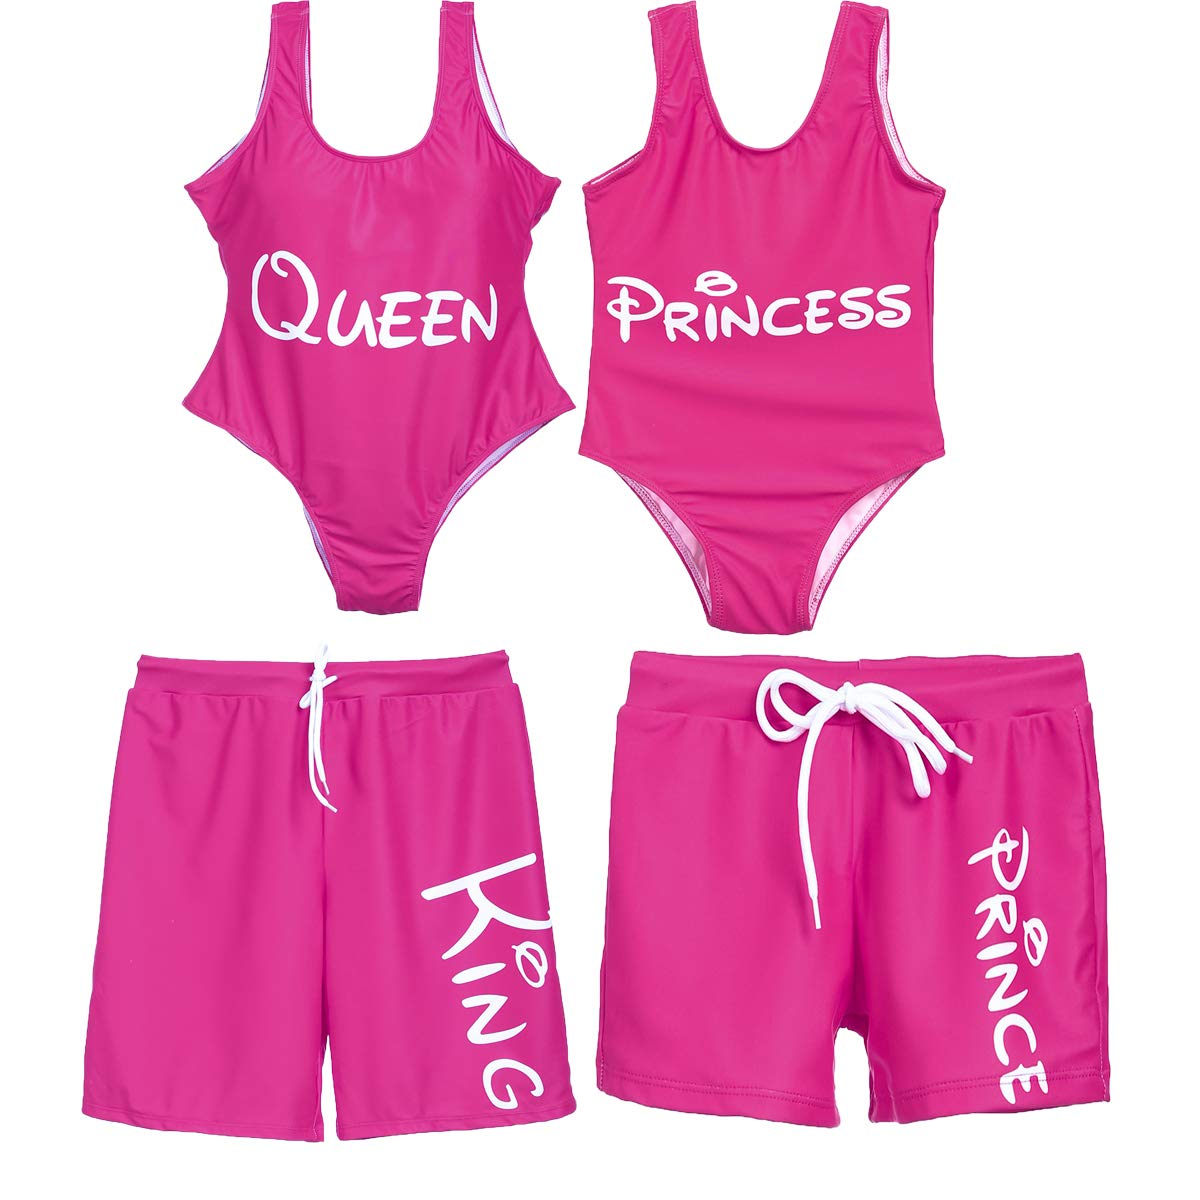 Mommy and Me Swimsuit Family Matching Mother Daughter King Queen Princess Prince Swimwear Bathing Suit (Rose,Girls, 1T)